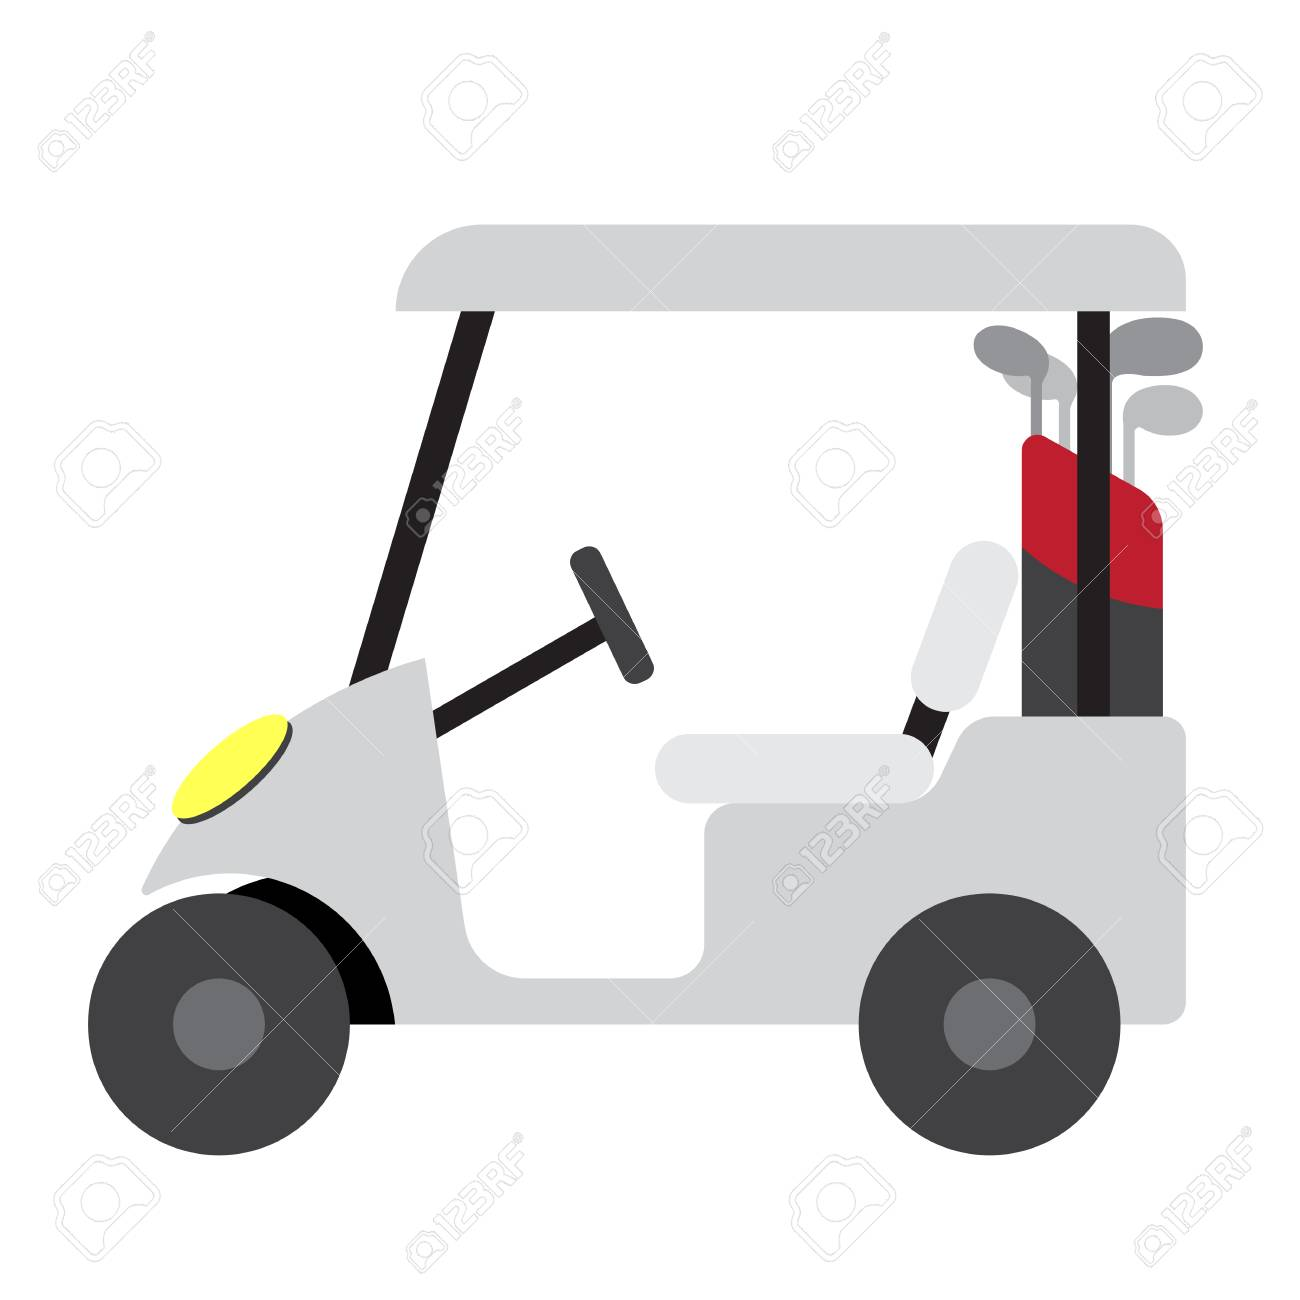 Golf Cart Transportation Cartoon Character Side View Isolated Royalty Free Cliparts Vectors And Stock Illustration Image 101653906